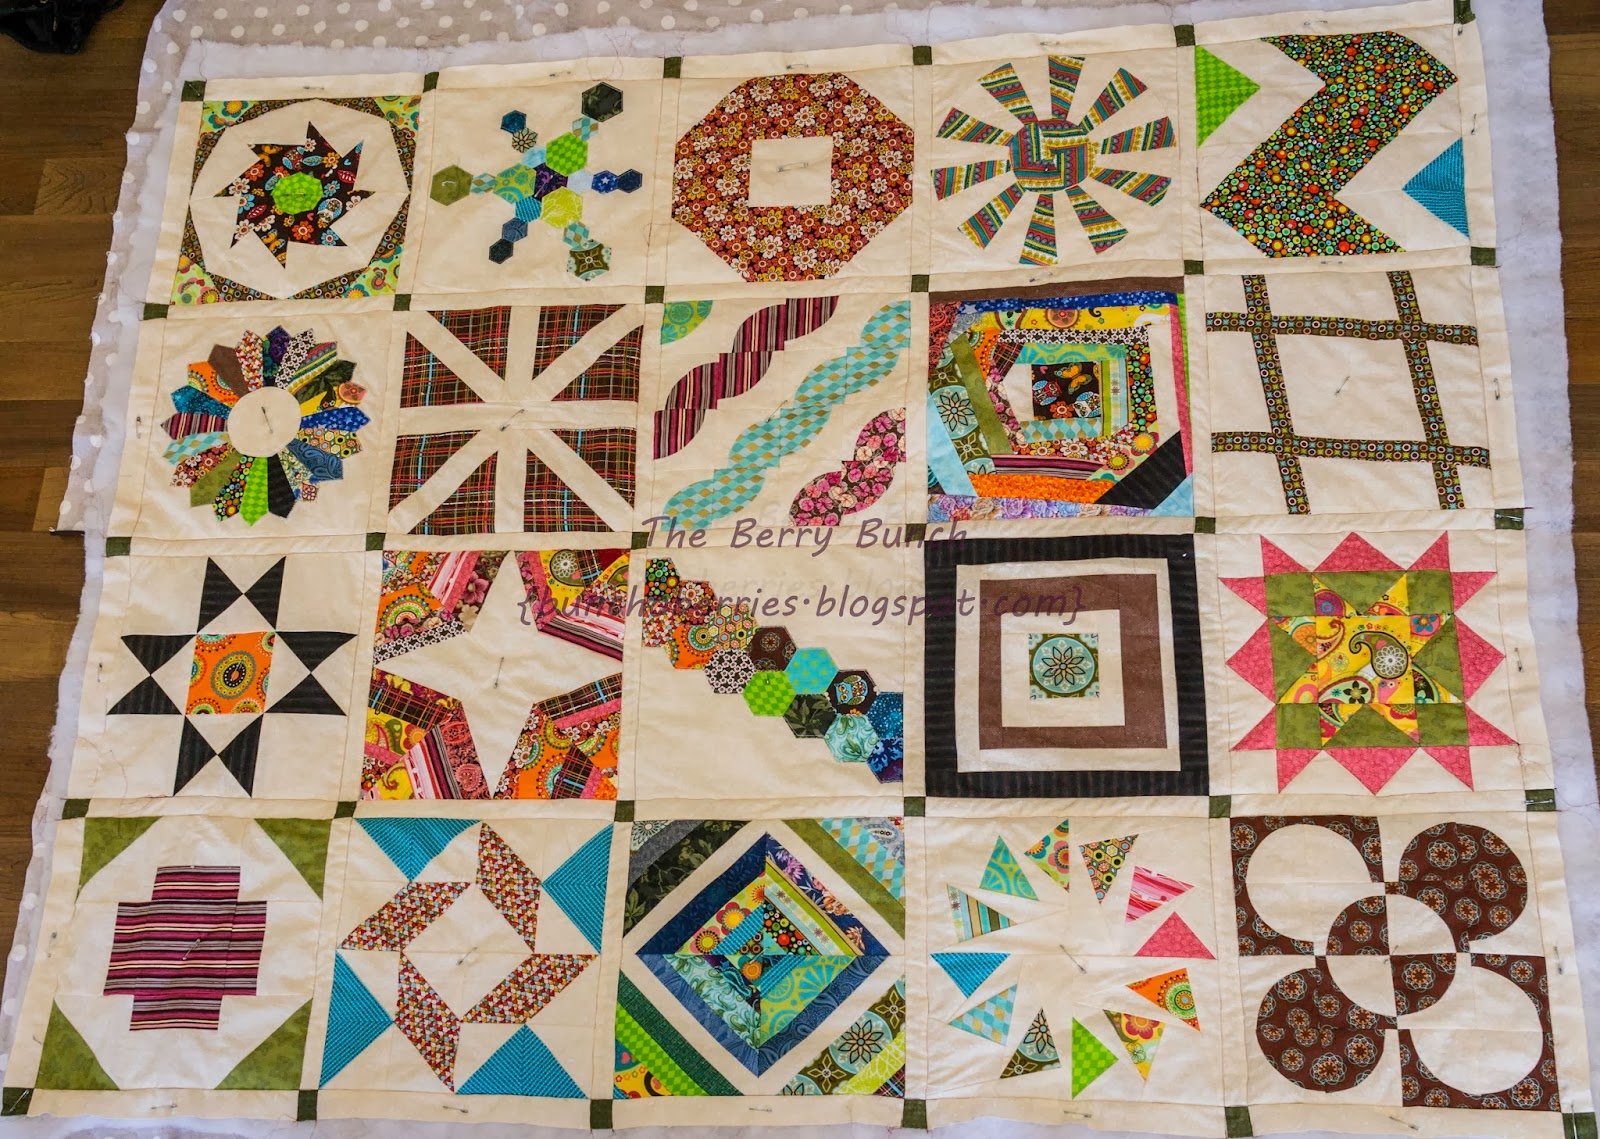 The Berry Bunch: 2014 Finish-A-Long: Craftsy BOM